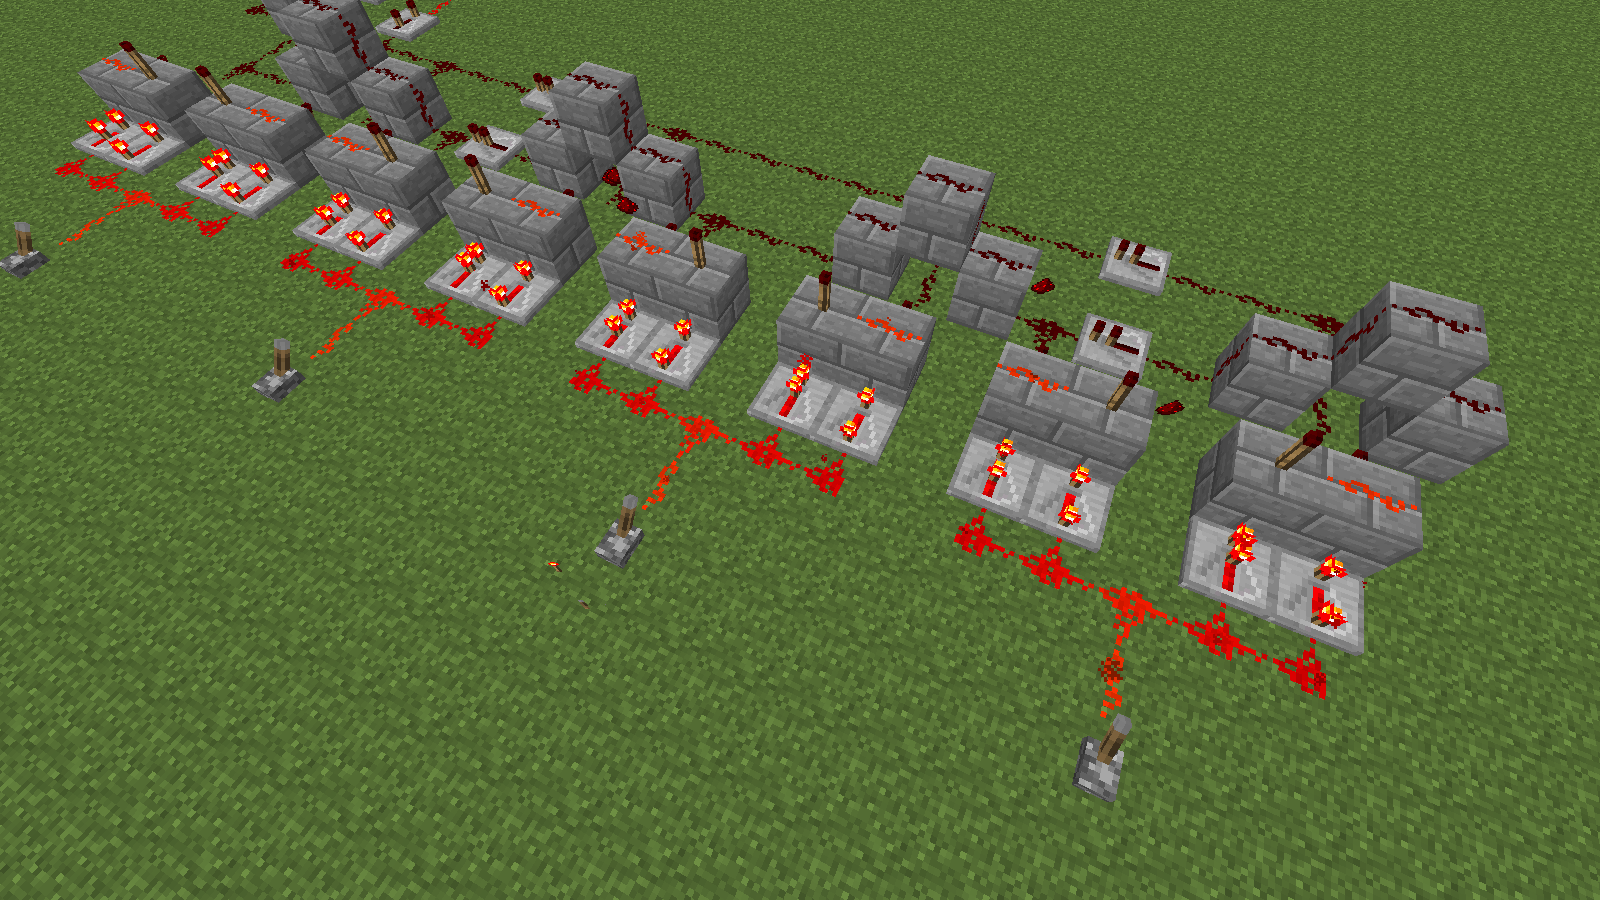 how to build redstone circuits rh blog connectedcamps com Redstone Circuits Redstone Lamp Wiring